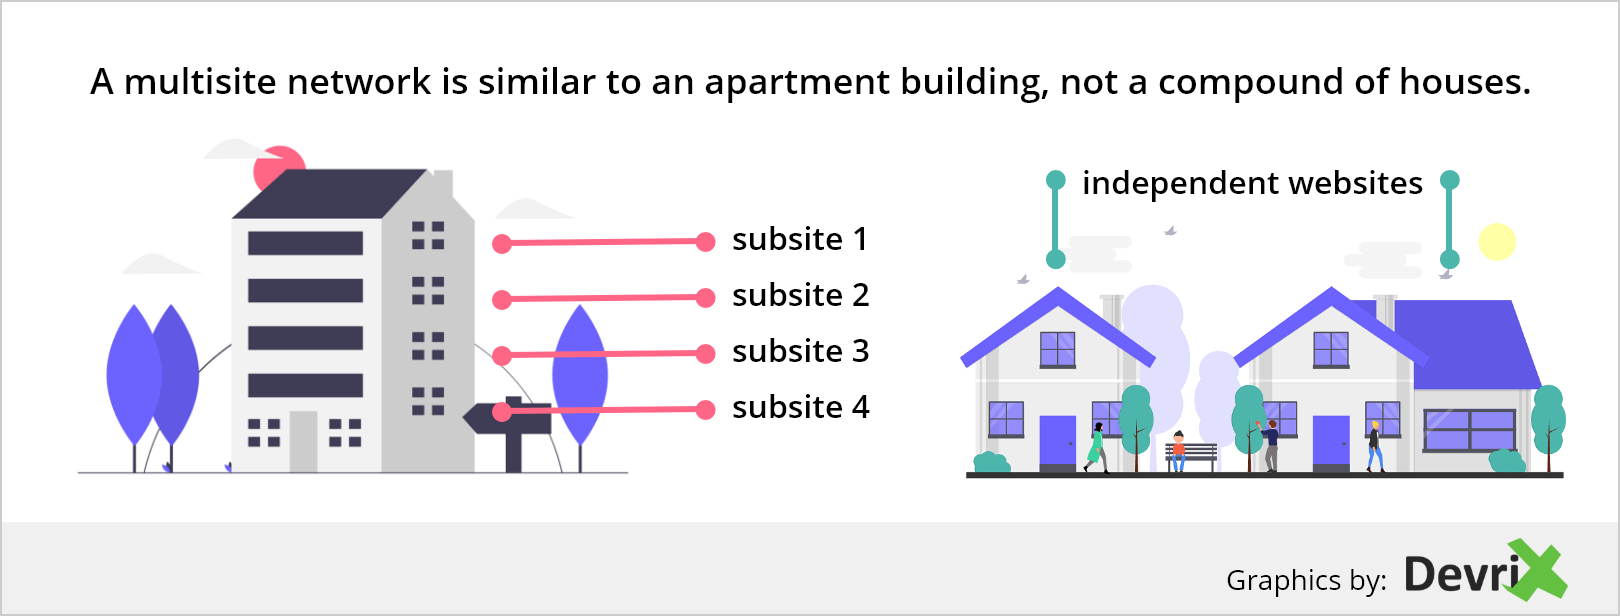 A multisite network is similar to an apartment building, not a compound of houses.